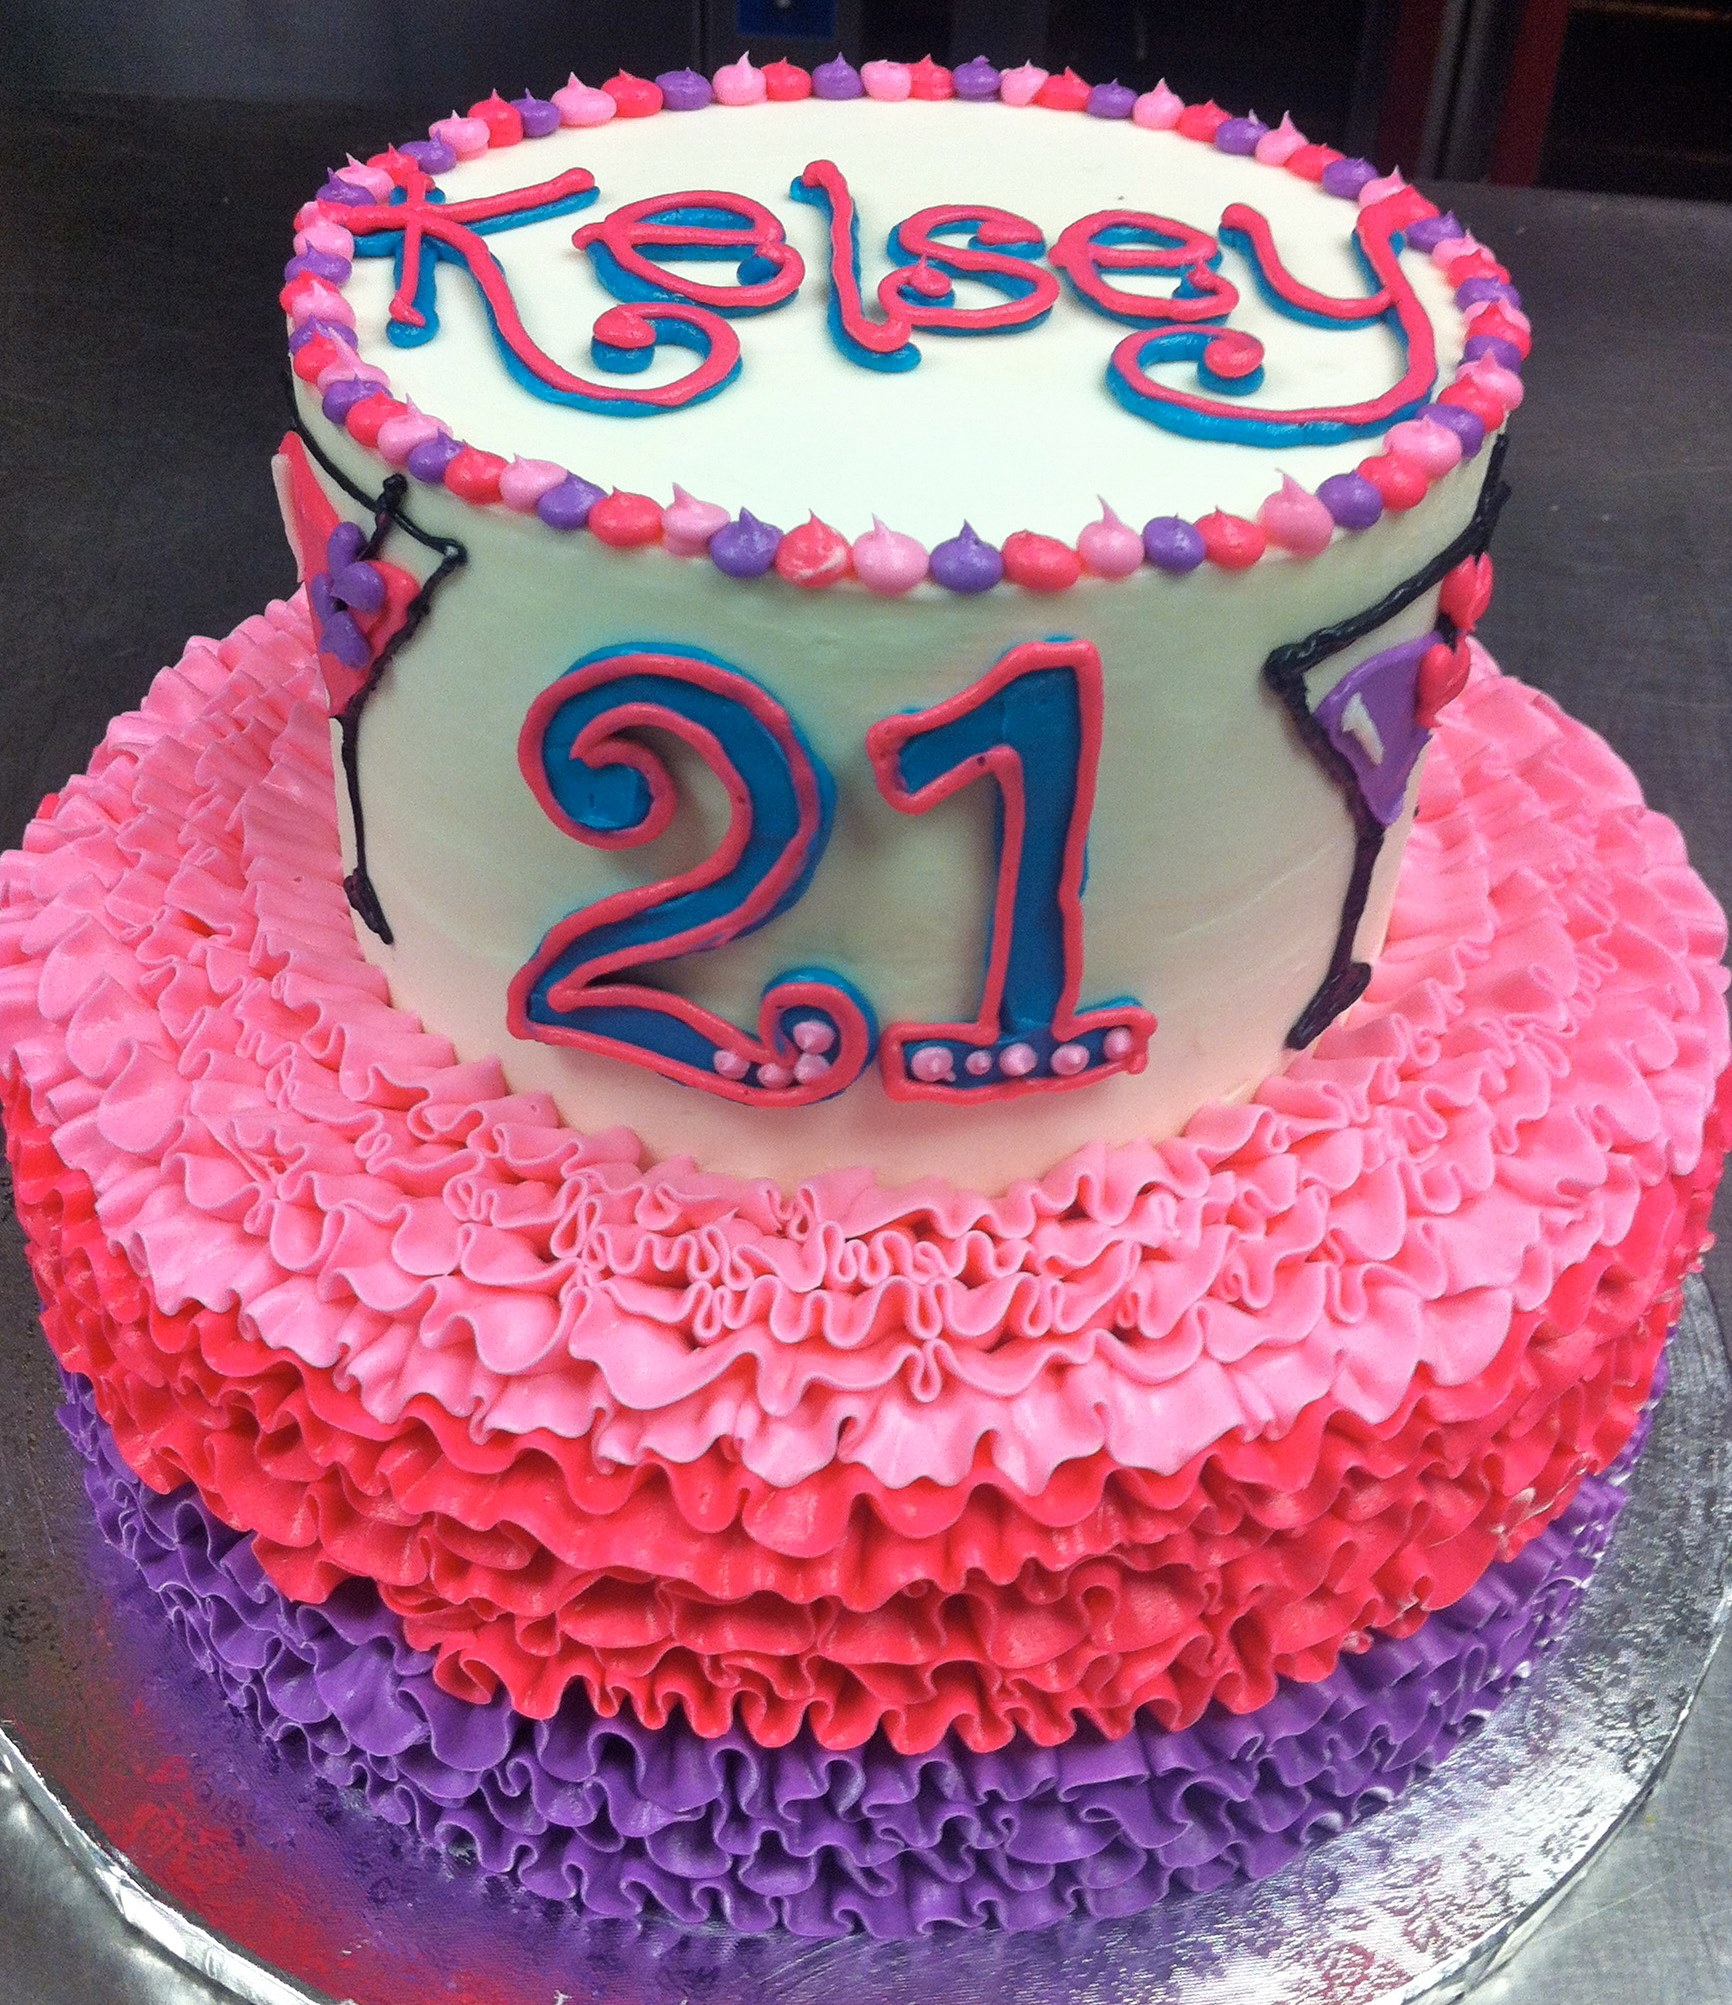 Girly Ideas For Bedrooms: 21st Birthday Girly Ruffle Cake